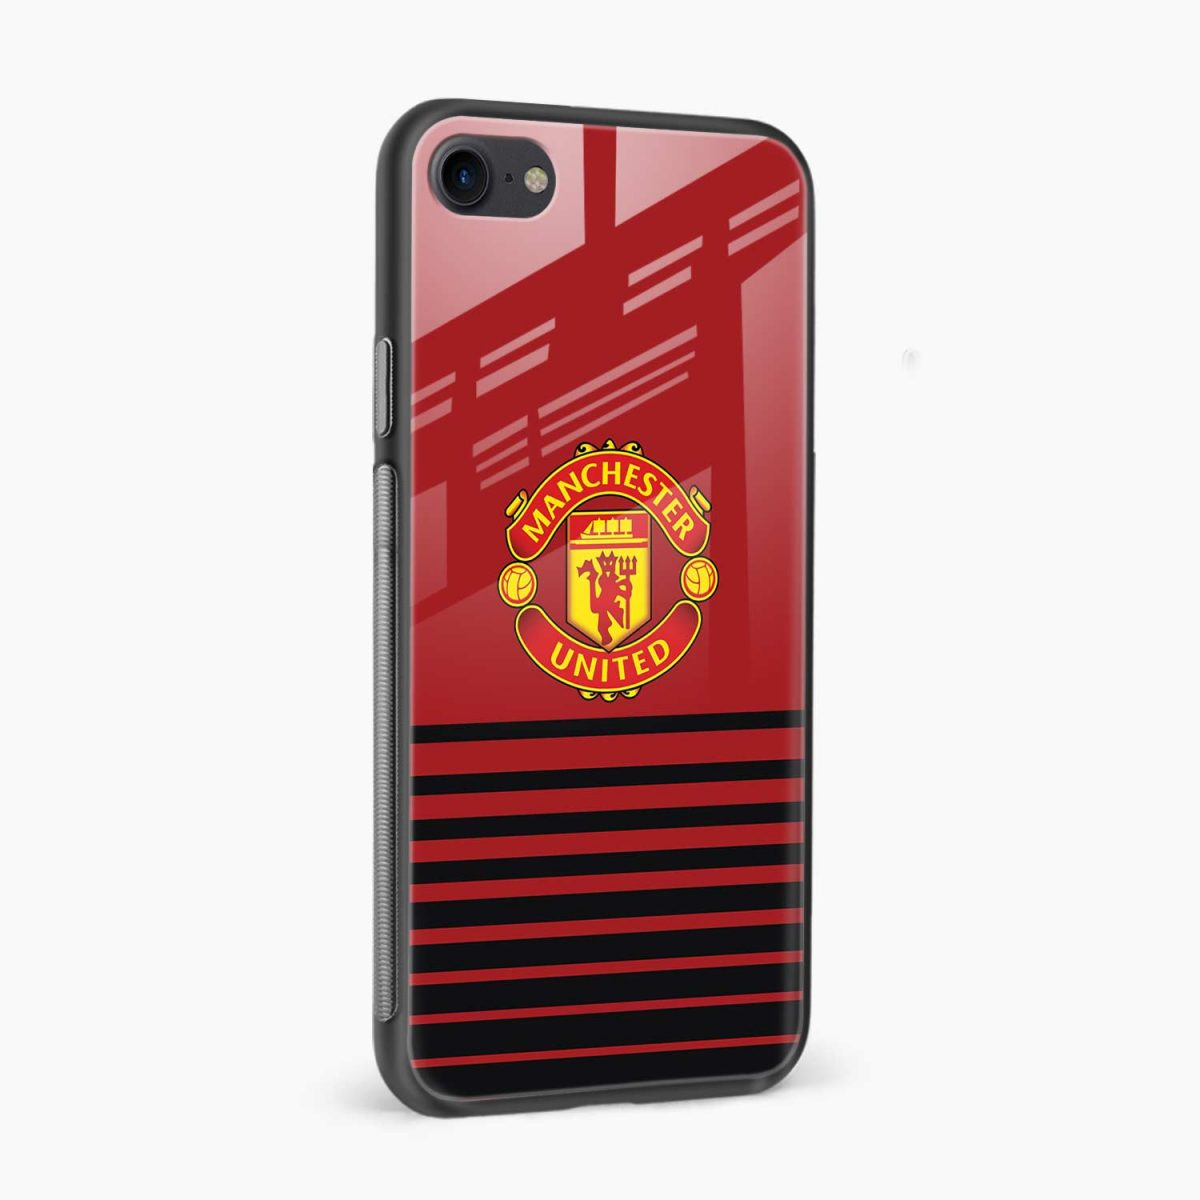 manchester united side view apple iphone 6 7 8 se back cover